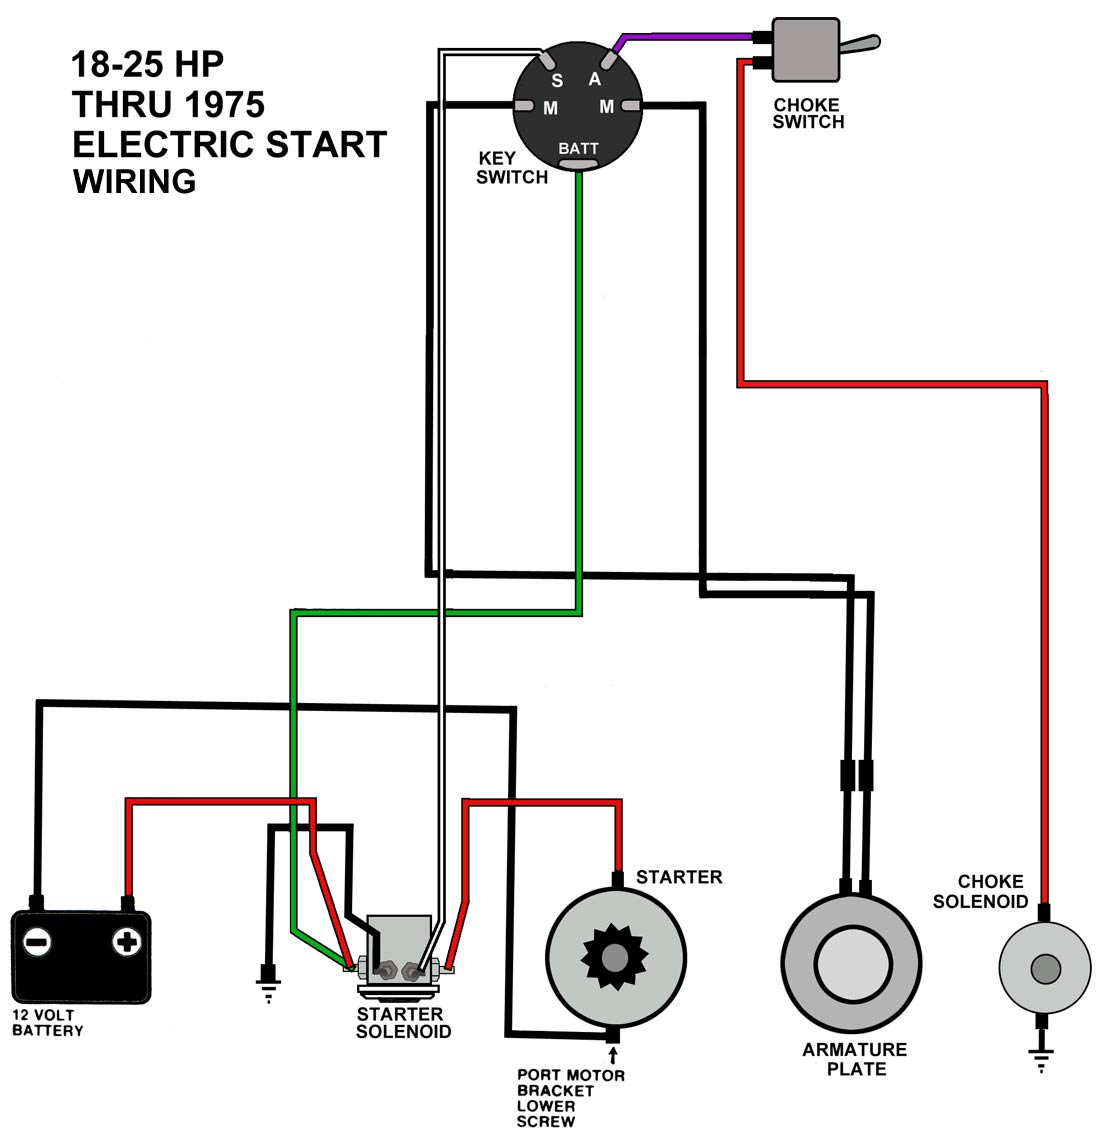 Evinrude Johnson Outboard Wiring Diagrams Mastertech Marine 110 Male Plug Diagram 18 25 Hp Starter System